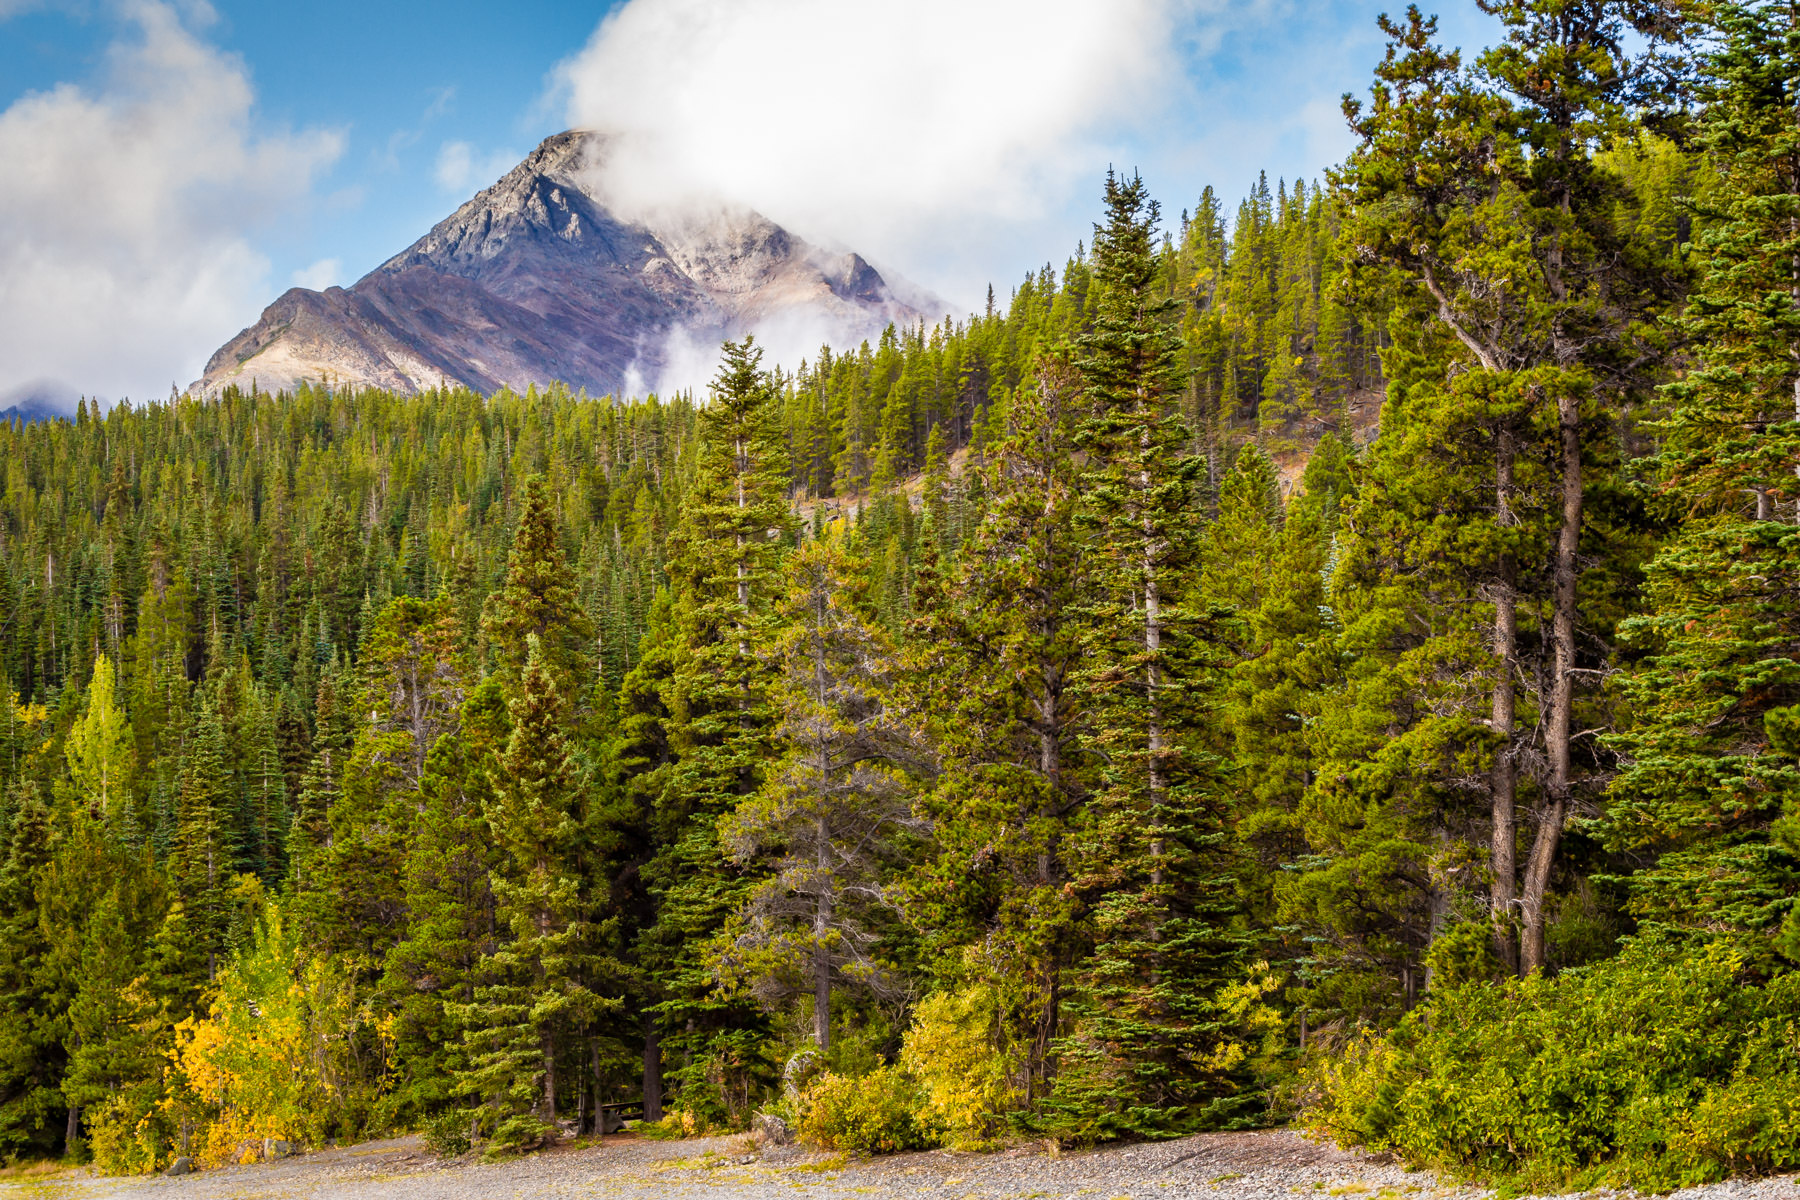 Pine trees grow along the shore of Tutshi Lake, British Columbia, Canada.